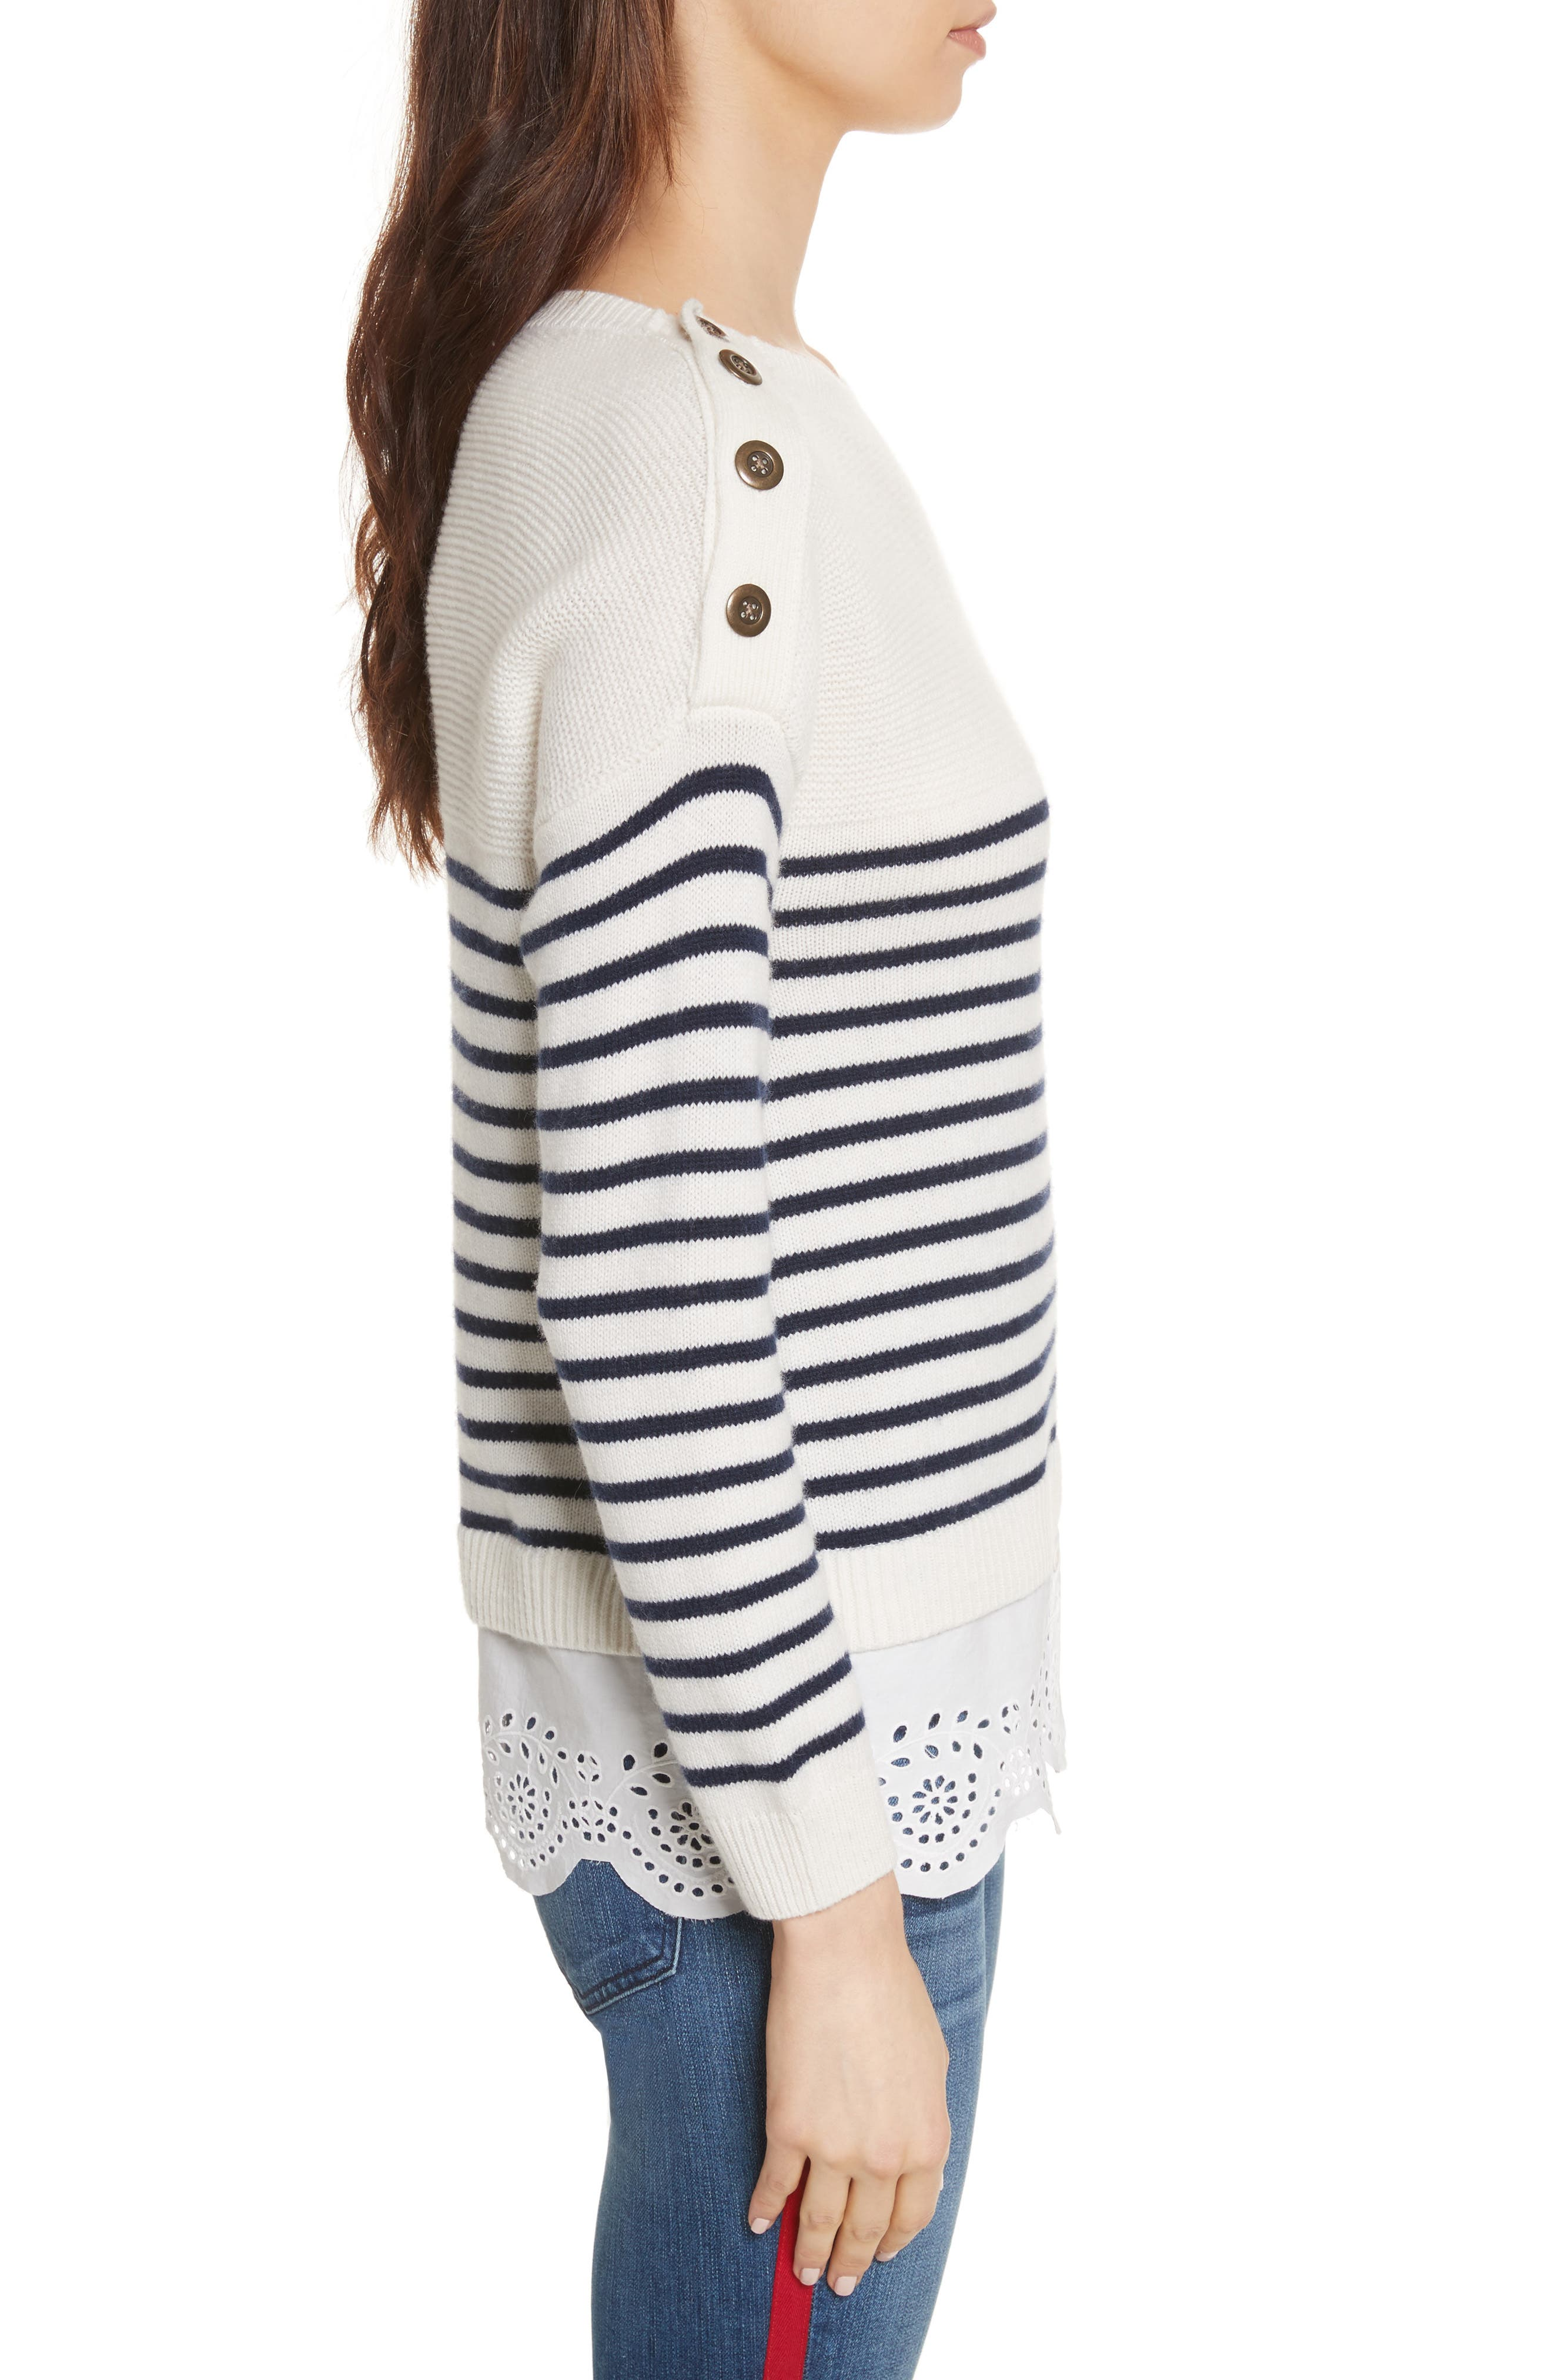 Aefre Woven Trim Wool & Cashmere Sweater,                             Alternate thumbnail 3, color,                             029